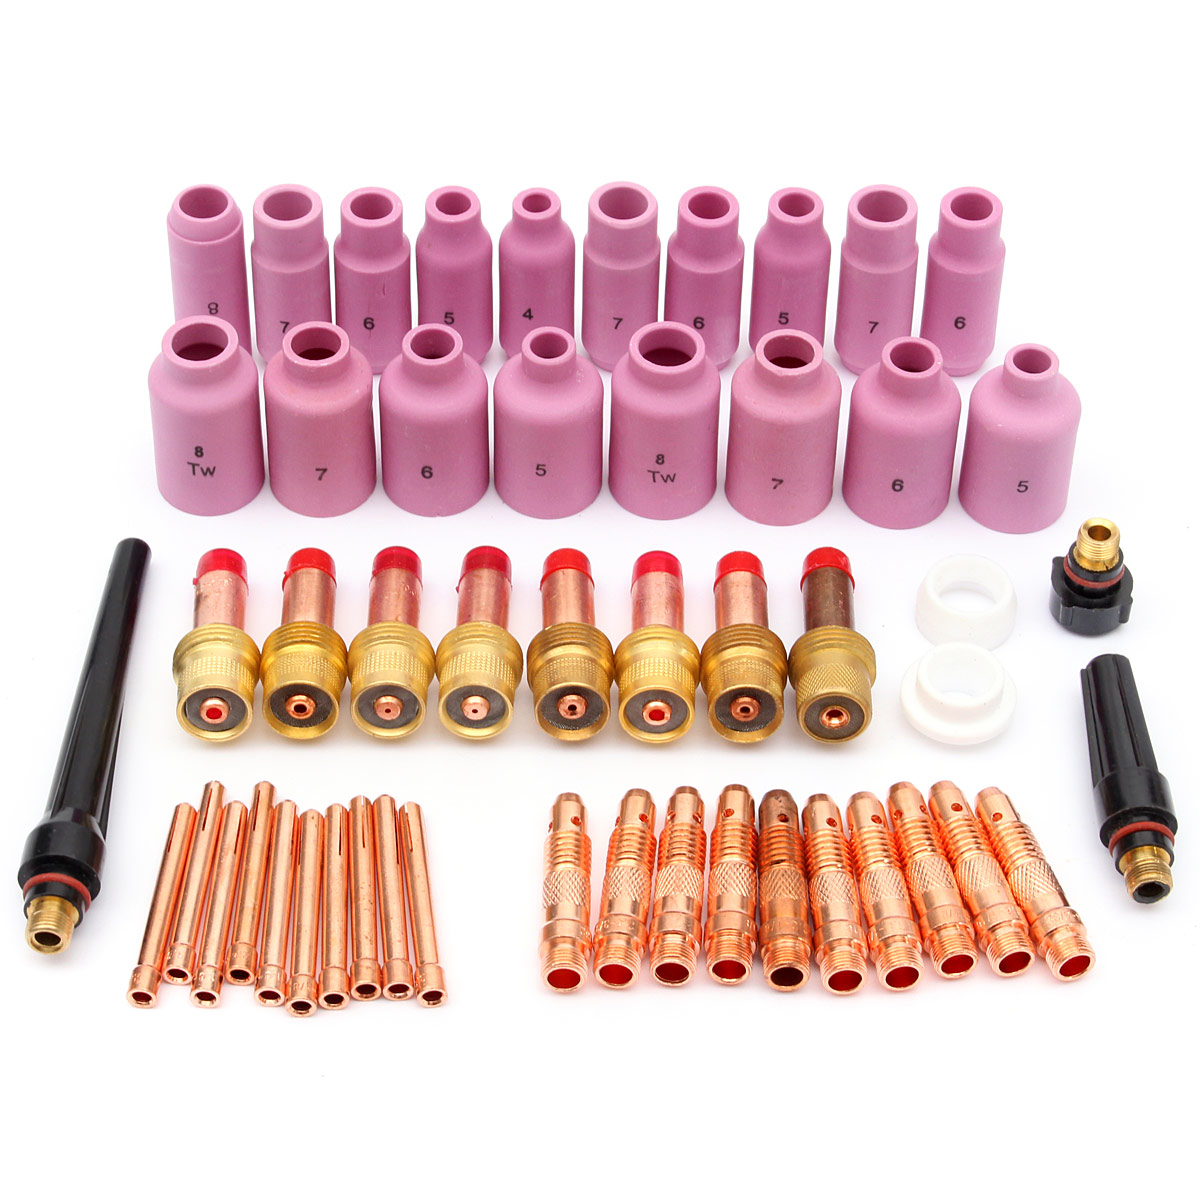 51pcs/set Durable TIG Welding Torch Accessories Consumables FIT WP 17 18 26 Series Gas Lens Nozzles Welding Accessories